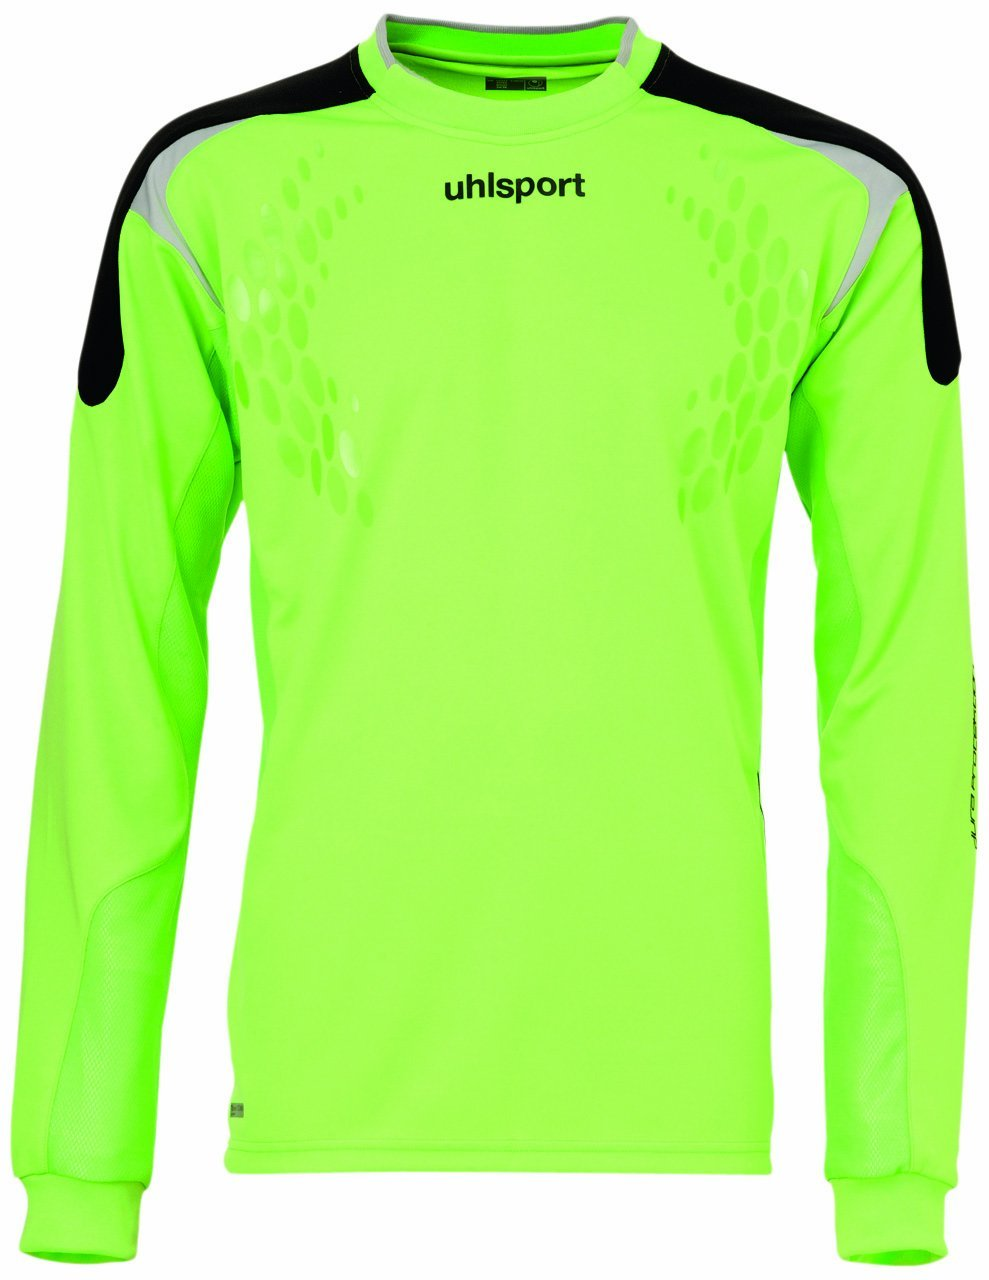 a8ce32843 Get Quotations · Uhlsport Torwart Tech Long Sleeve Goalkeeper Jersey